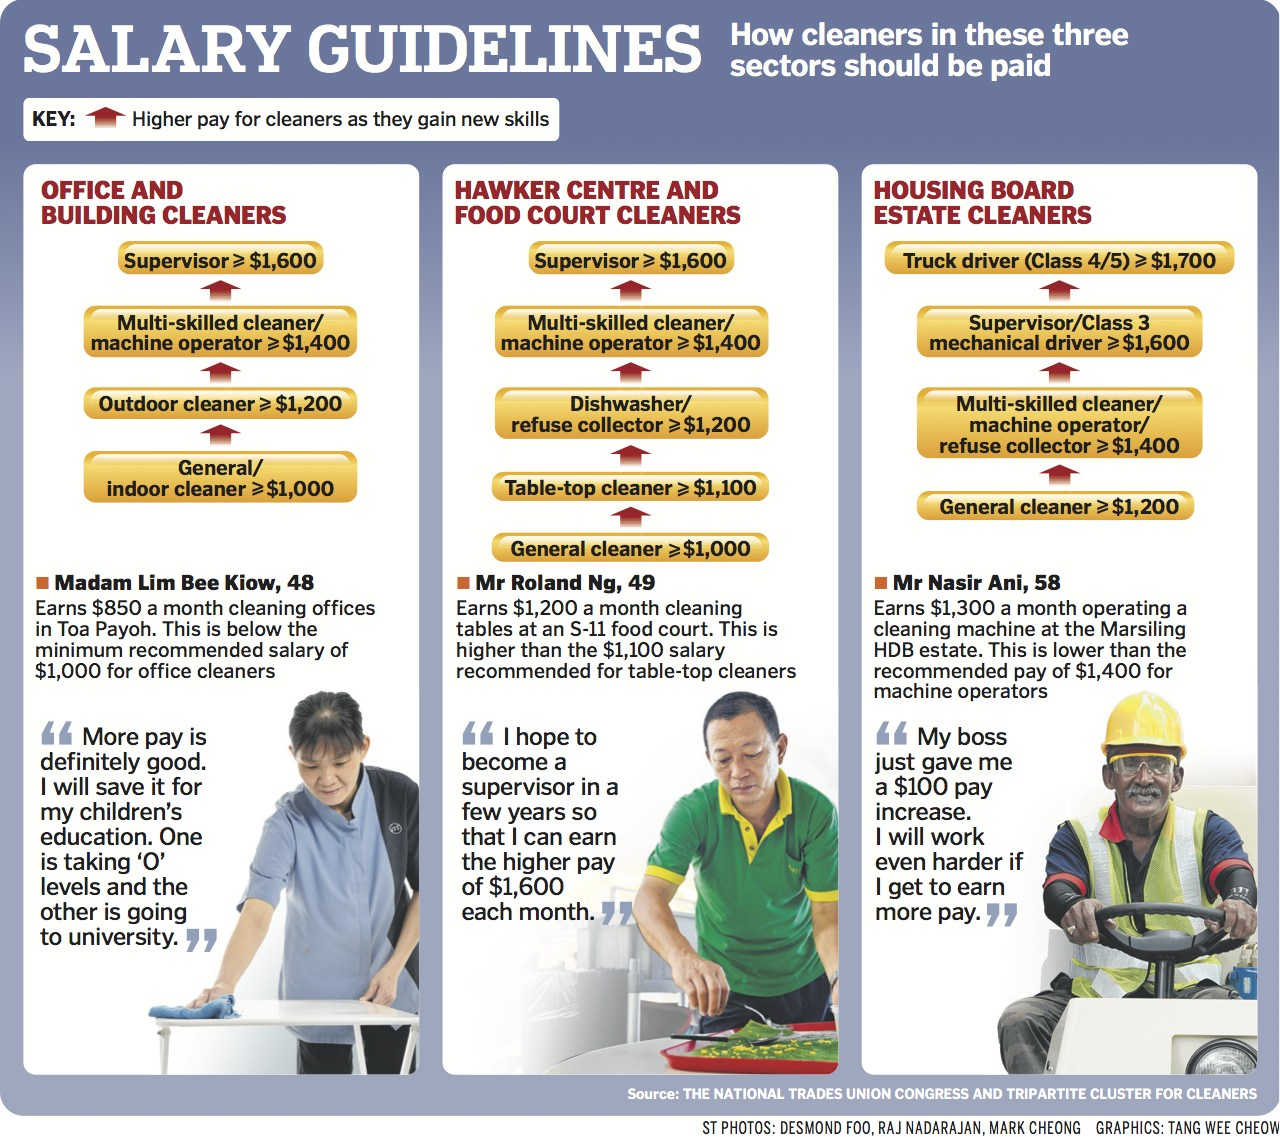 why implementing minimum wage in singapore is a terrible idea b2ap3 thumbnail 1cleaner pay 20140319 202025 1 jpg